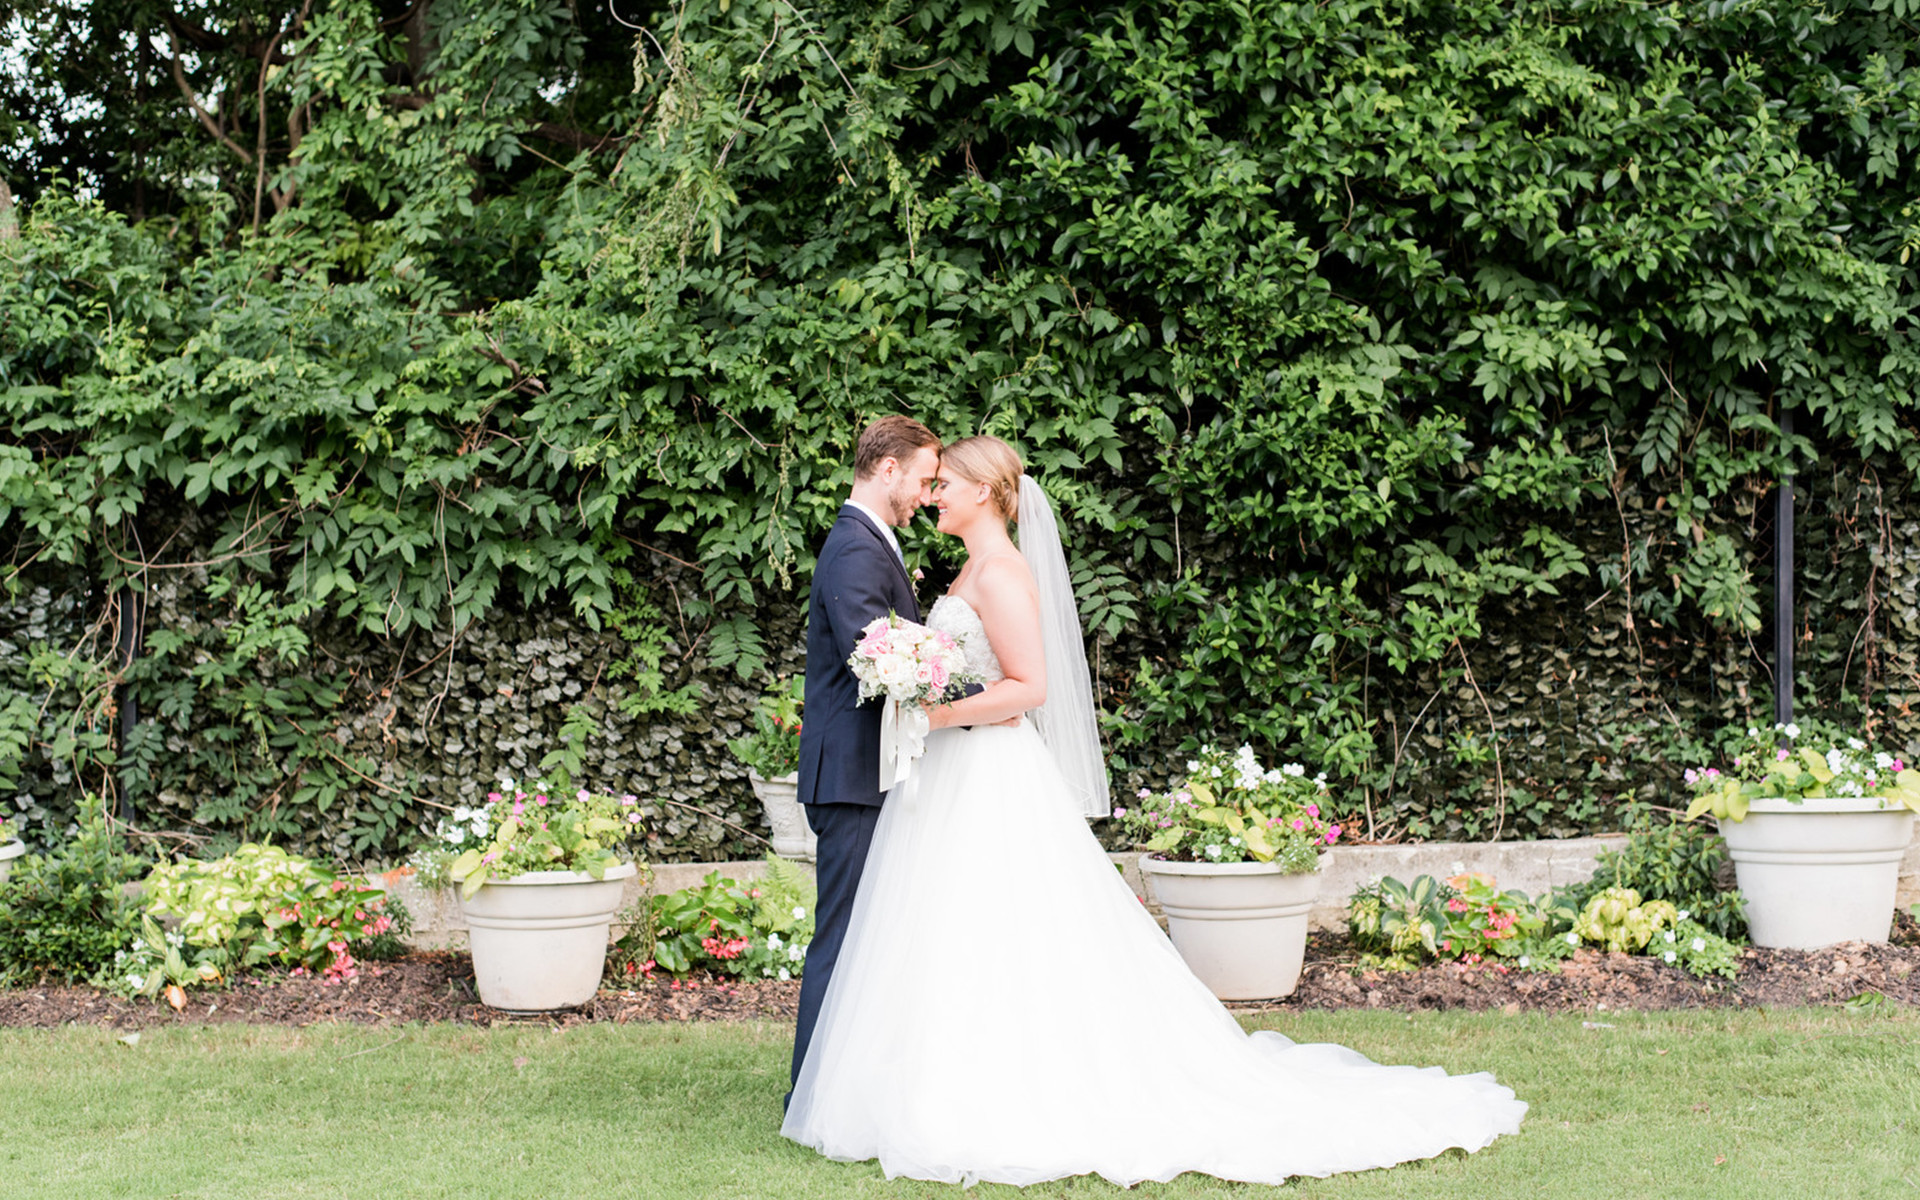 A Summer Garden Ceremony and Dancing-Filled Reception